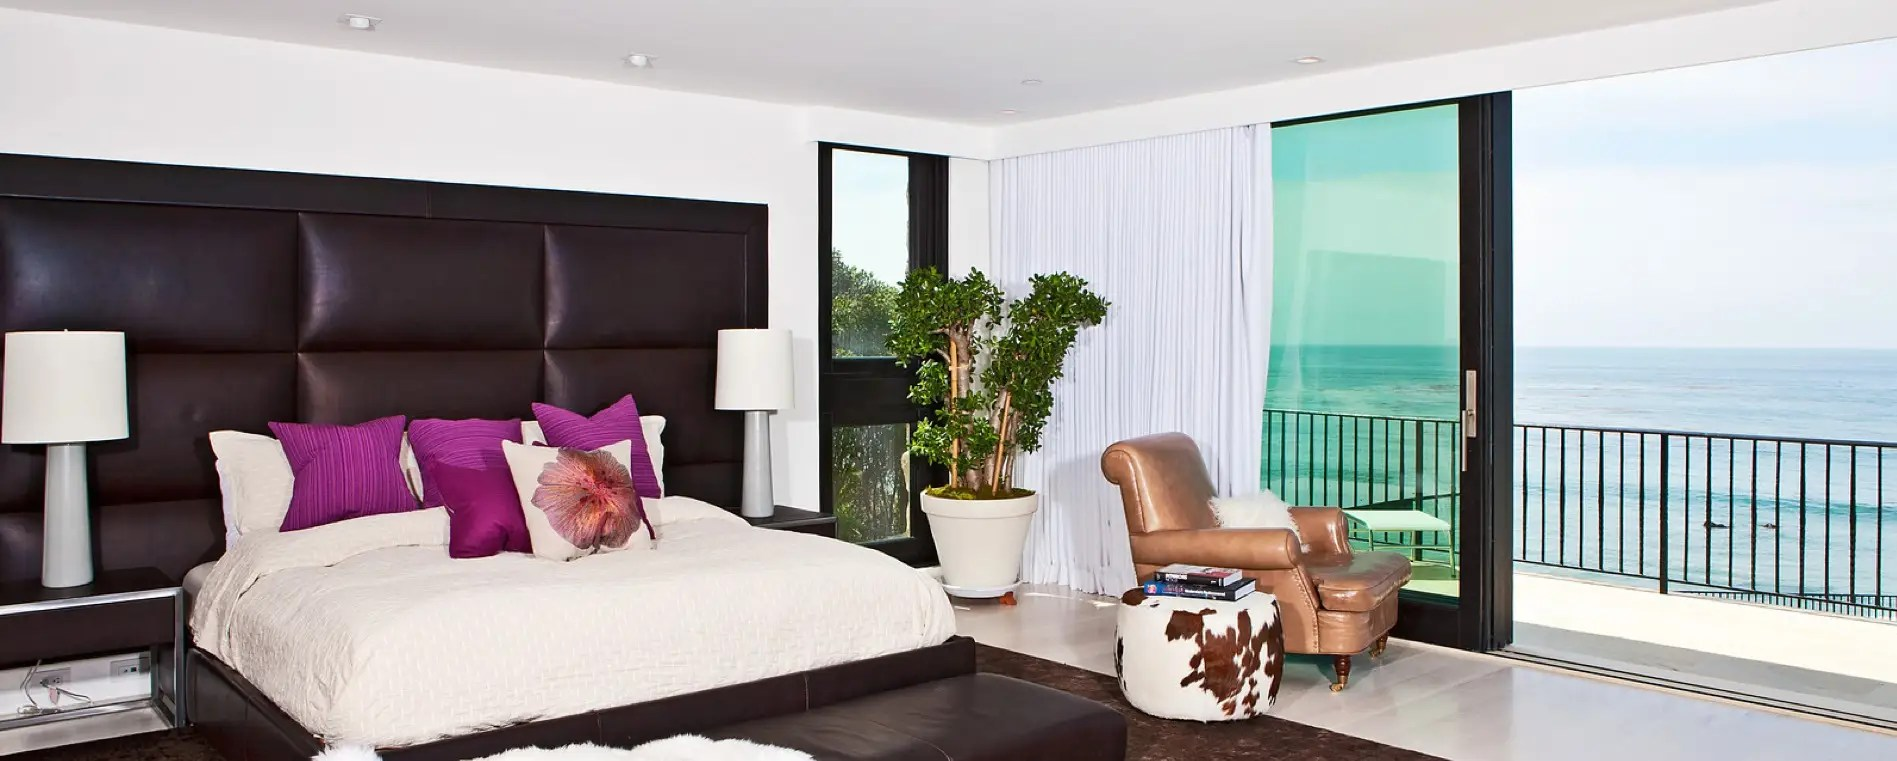 The master bedroom has a private terrace.